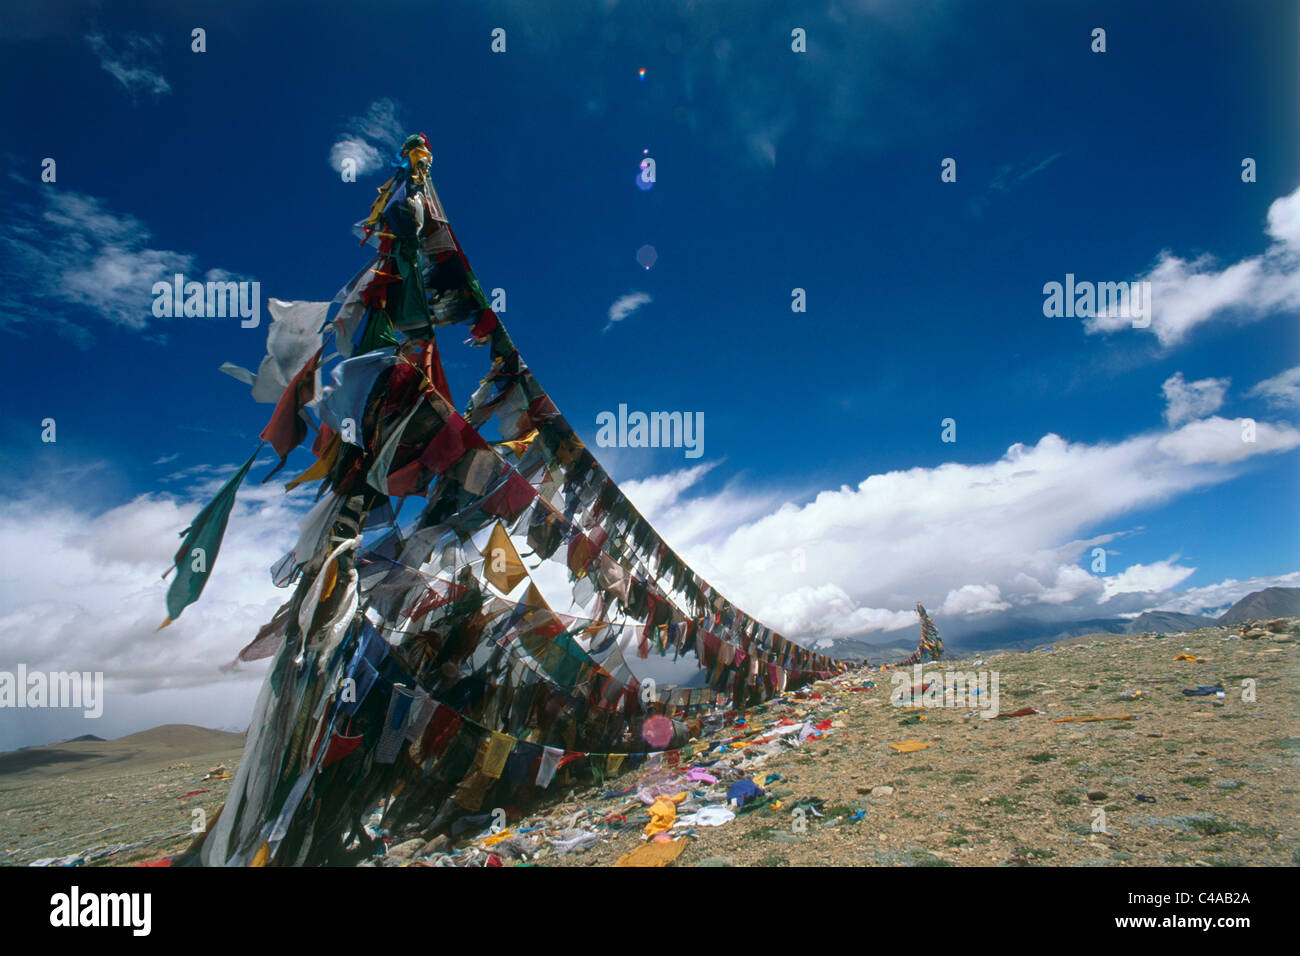 Photograph of a giant laundry hanger in Tibet - Stock Image